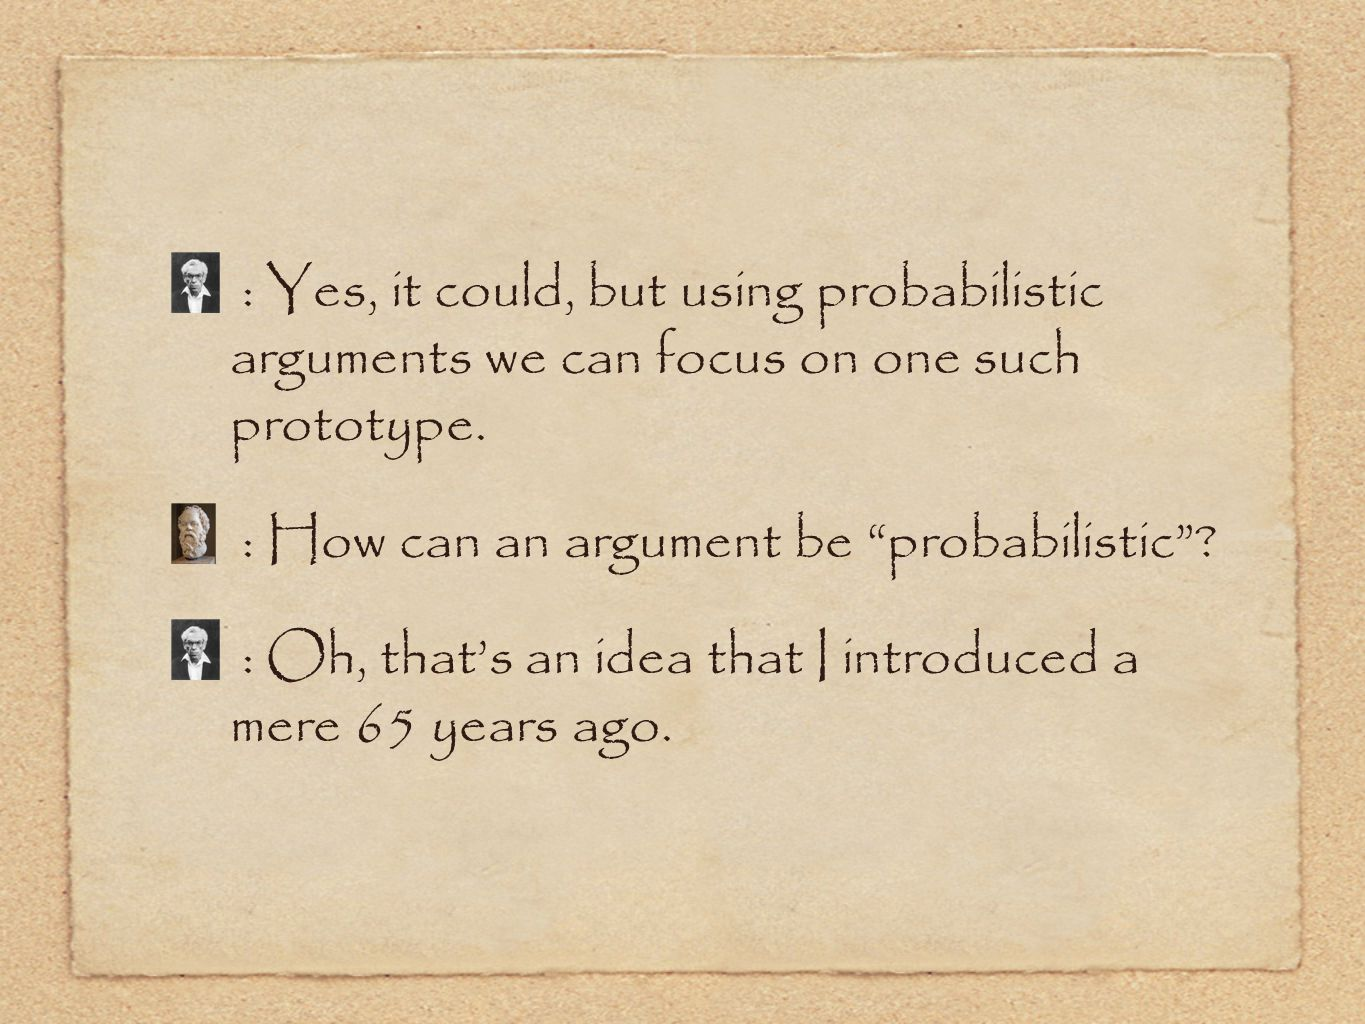 : Yes, it could, but using probabilistic arguments we can focus on one such prototype.